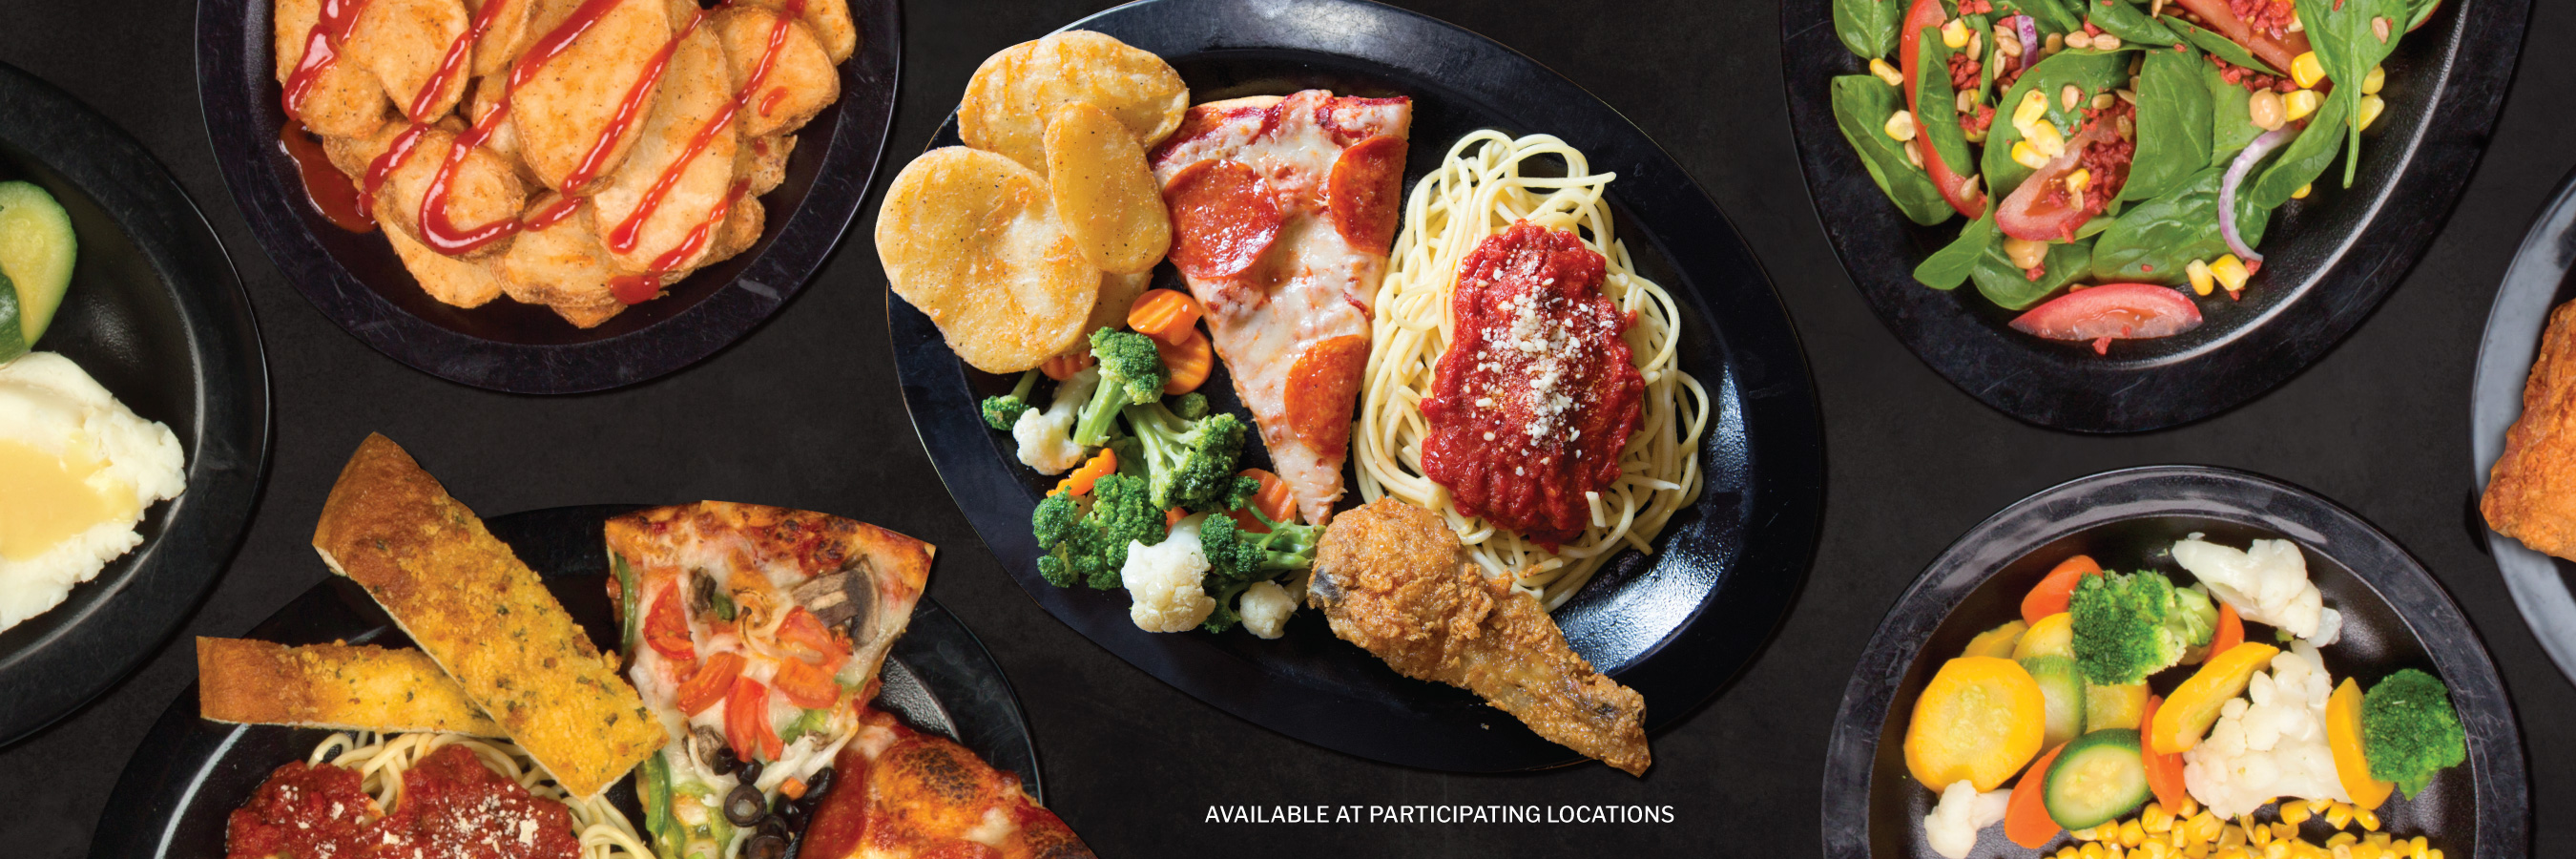 Shakey's Hero Image - Forget the wait. Fill your plate!